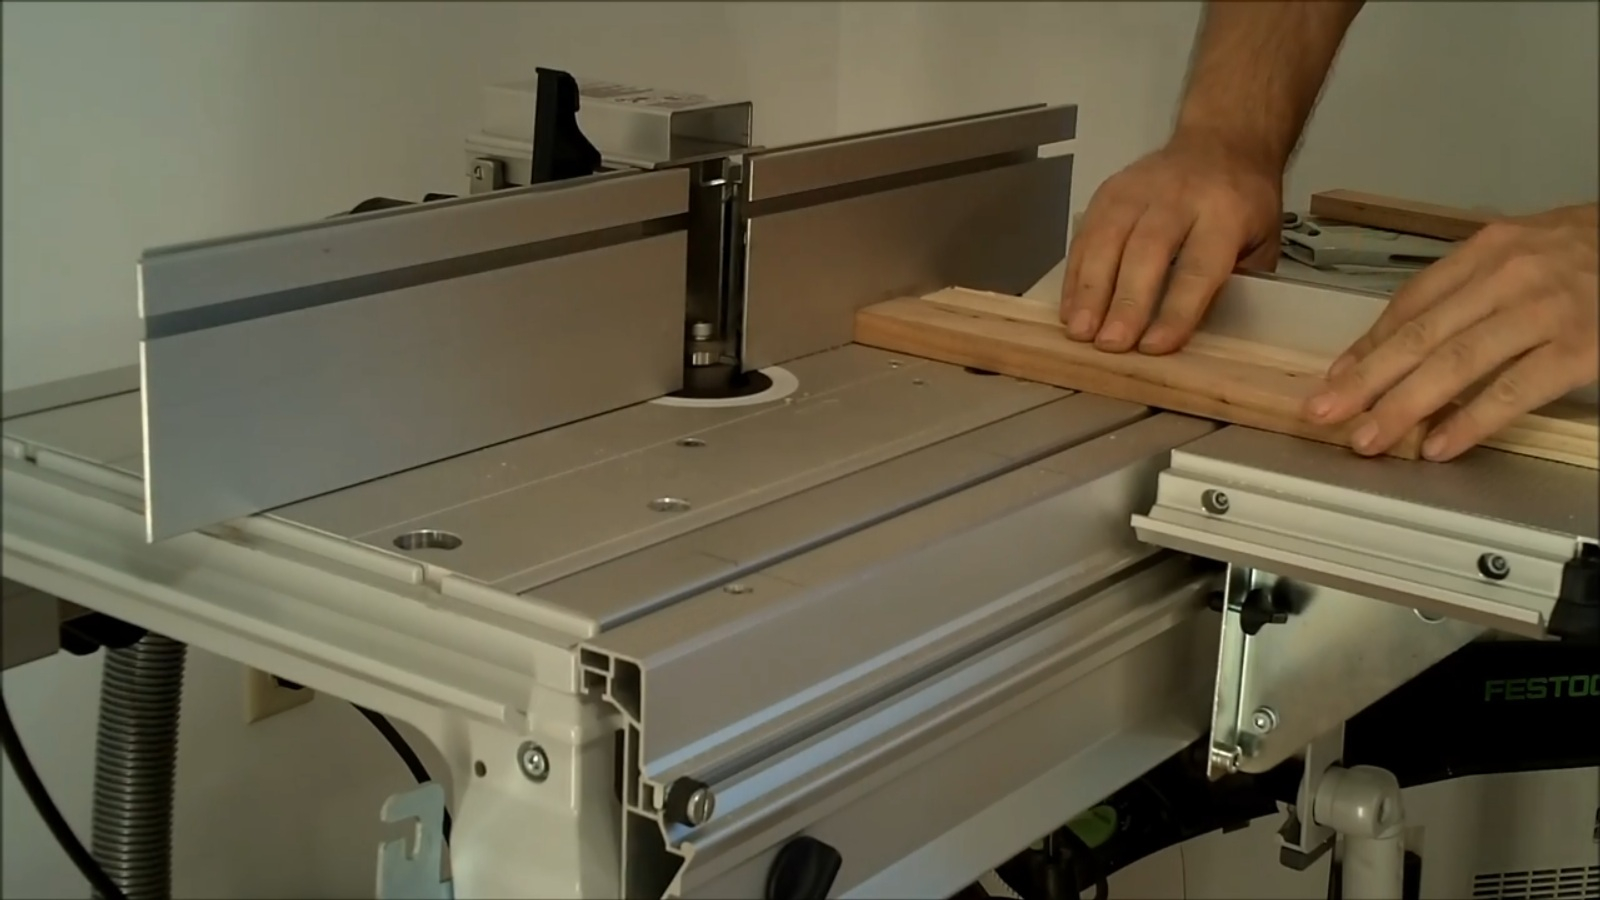 Making a shaker style cabinet door with the Festool CMS router table. & Making a shaker style cabinet door with the Festool CMS router ...